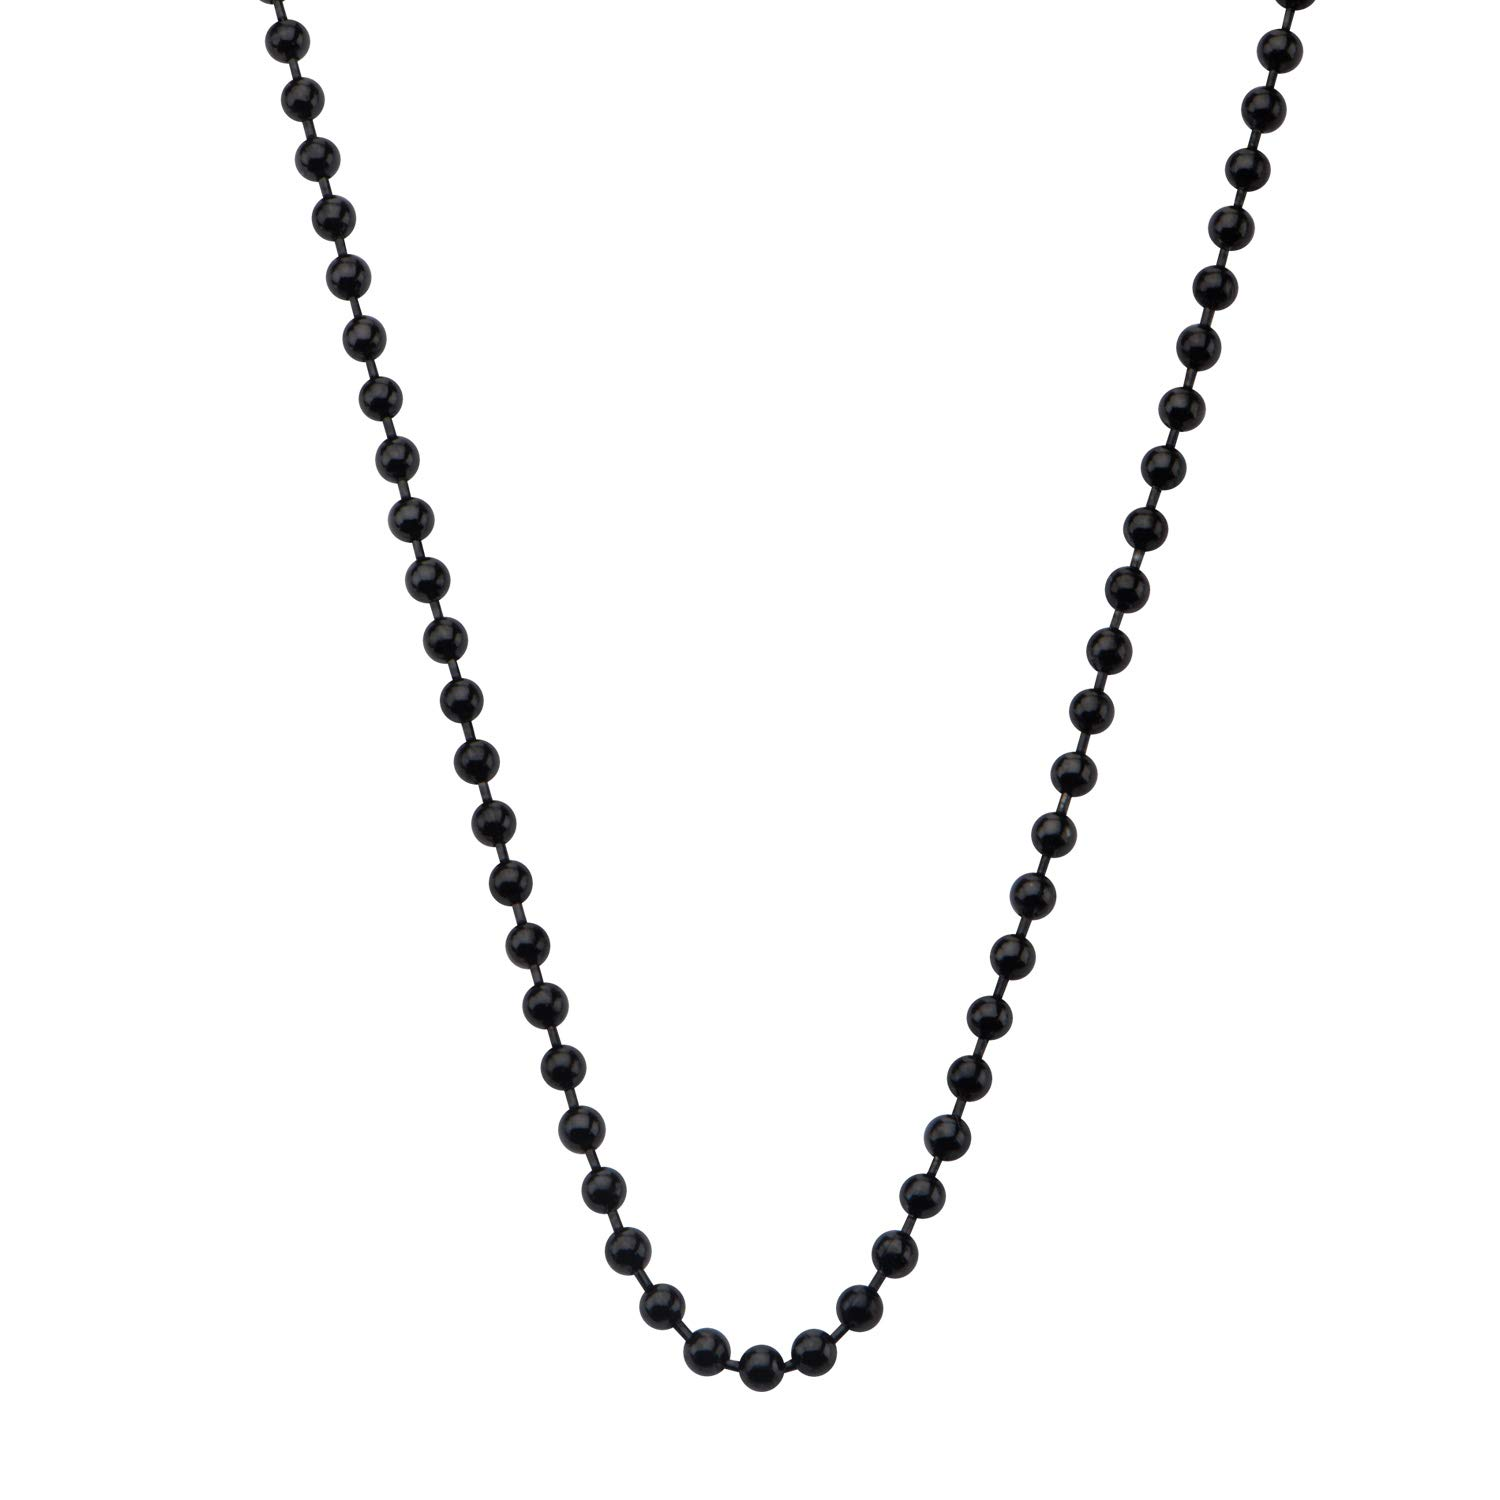 INOX Stainless Steel Super Black IP Polished 3mm Ball Chain